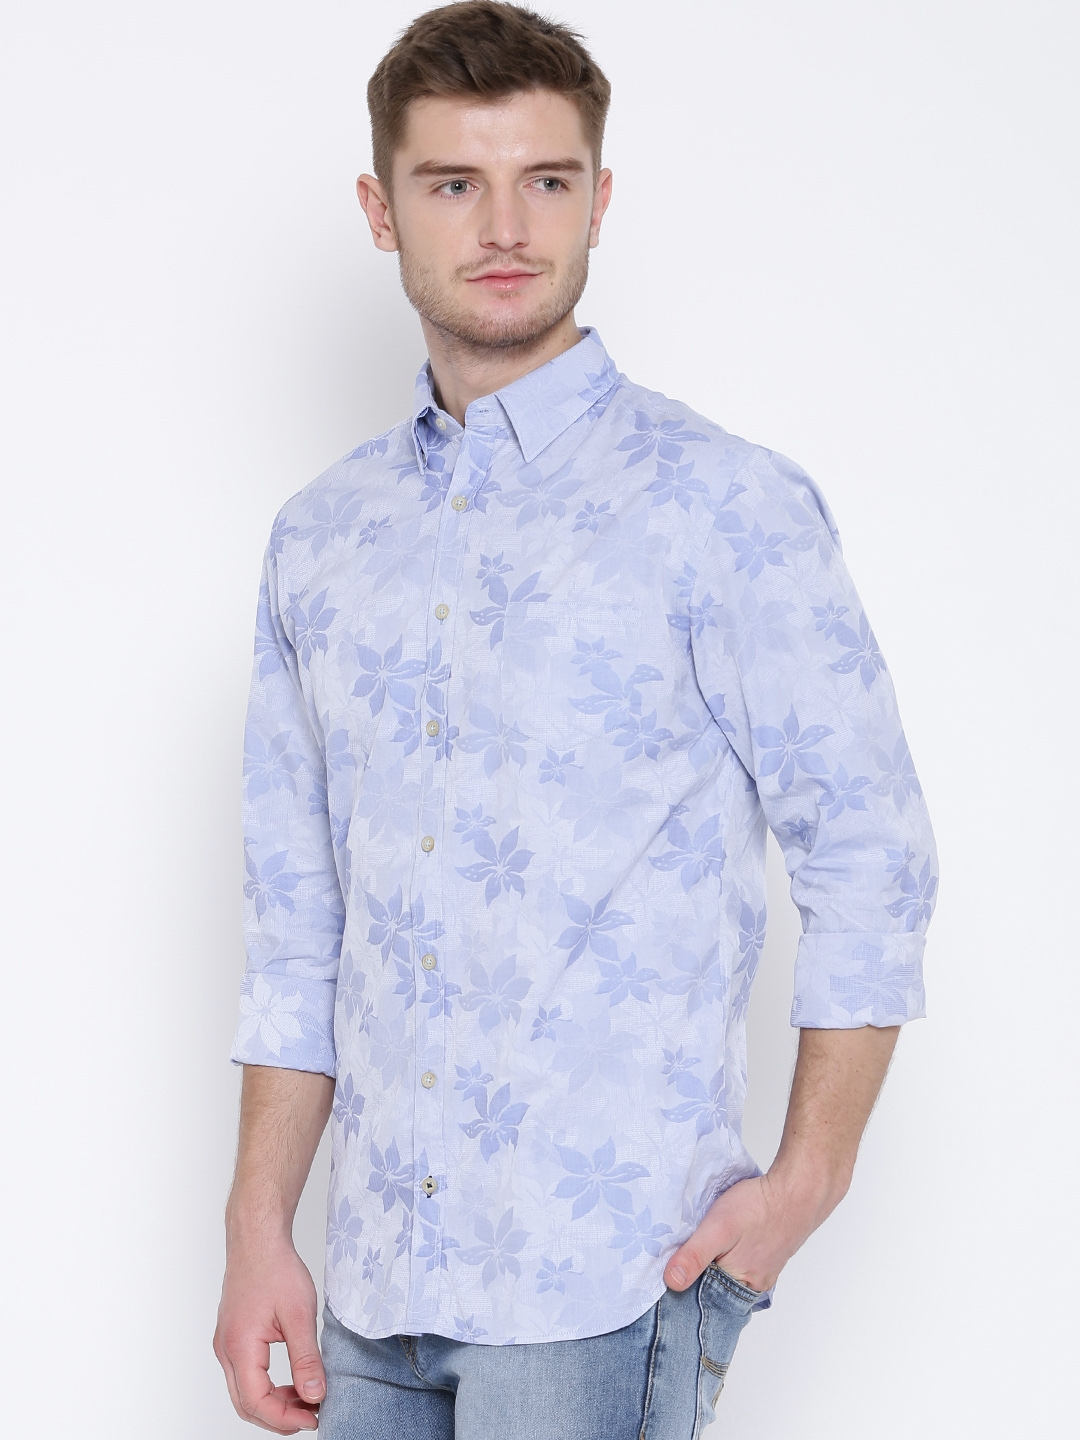 52e6b7ee6f Buy H.E. By MANGO Blue Floral Weave Slim Casual Shirt - Shirts for ...